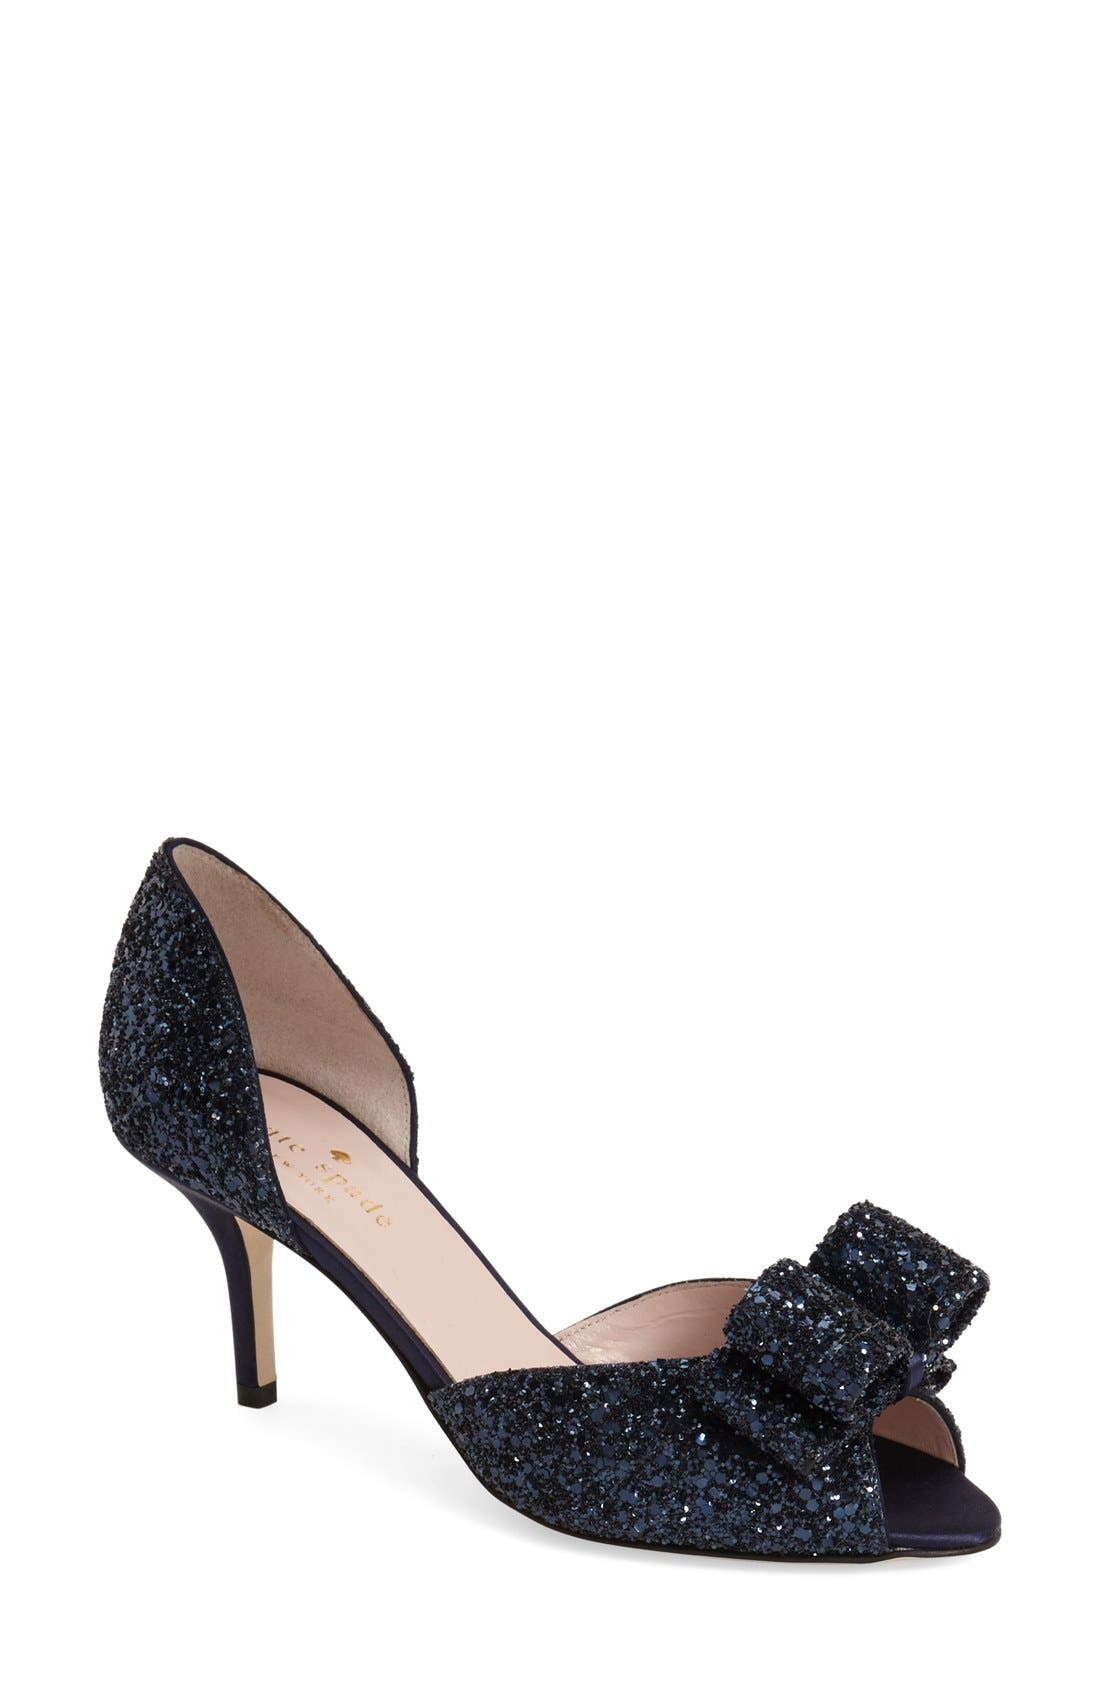 KATE SPADE NEW YORK 'sela' glitter bow peep